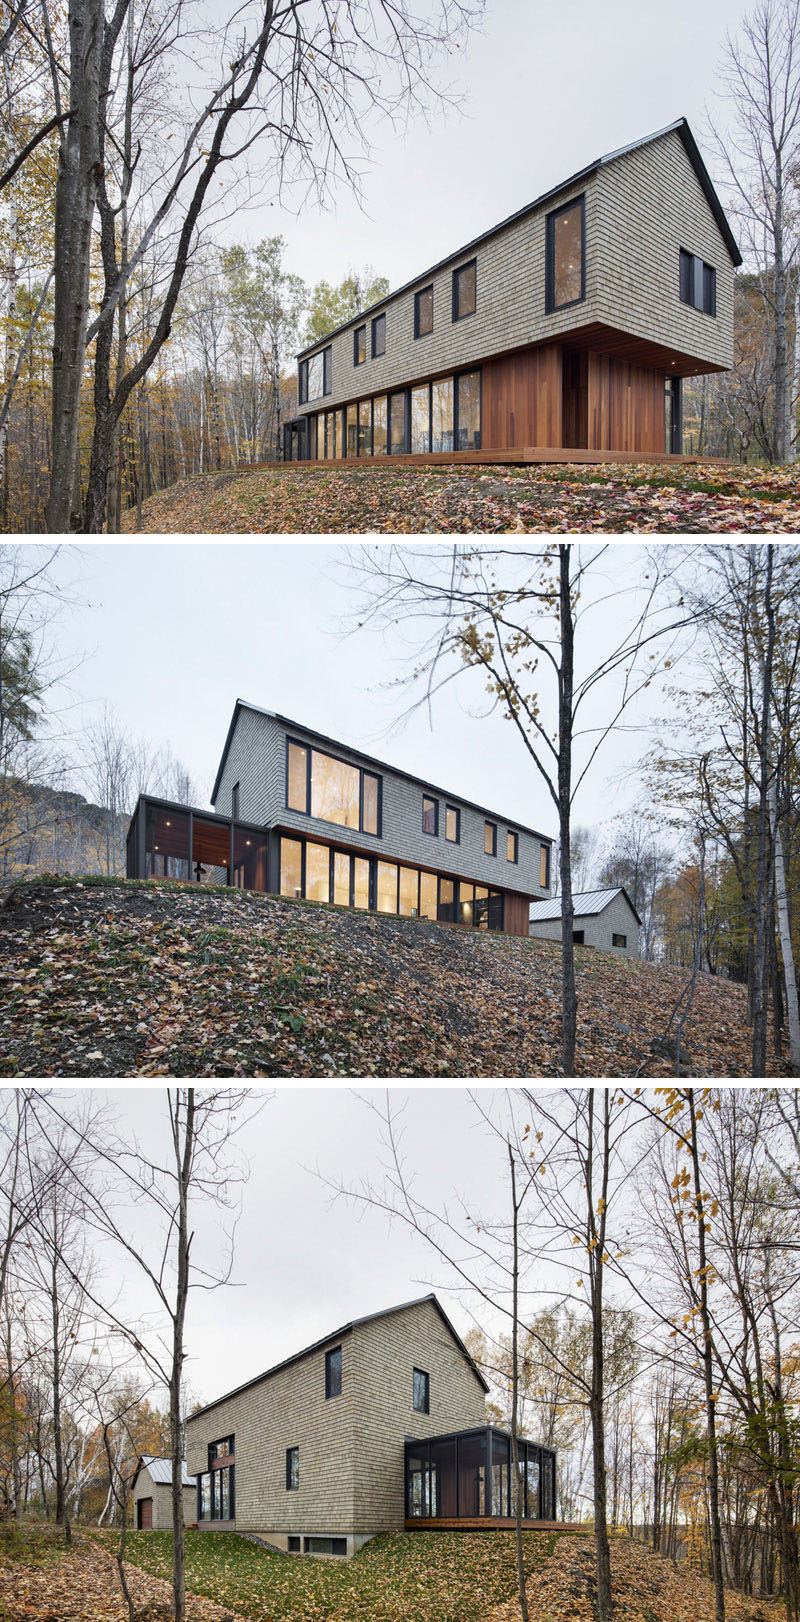 18 Modern House In The Forest // Wood shingles and wood paneling help this house fit right in with the forest surrounding it, while large windows provide views of the ever changing landscape.